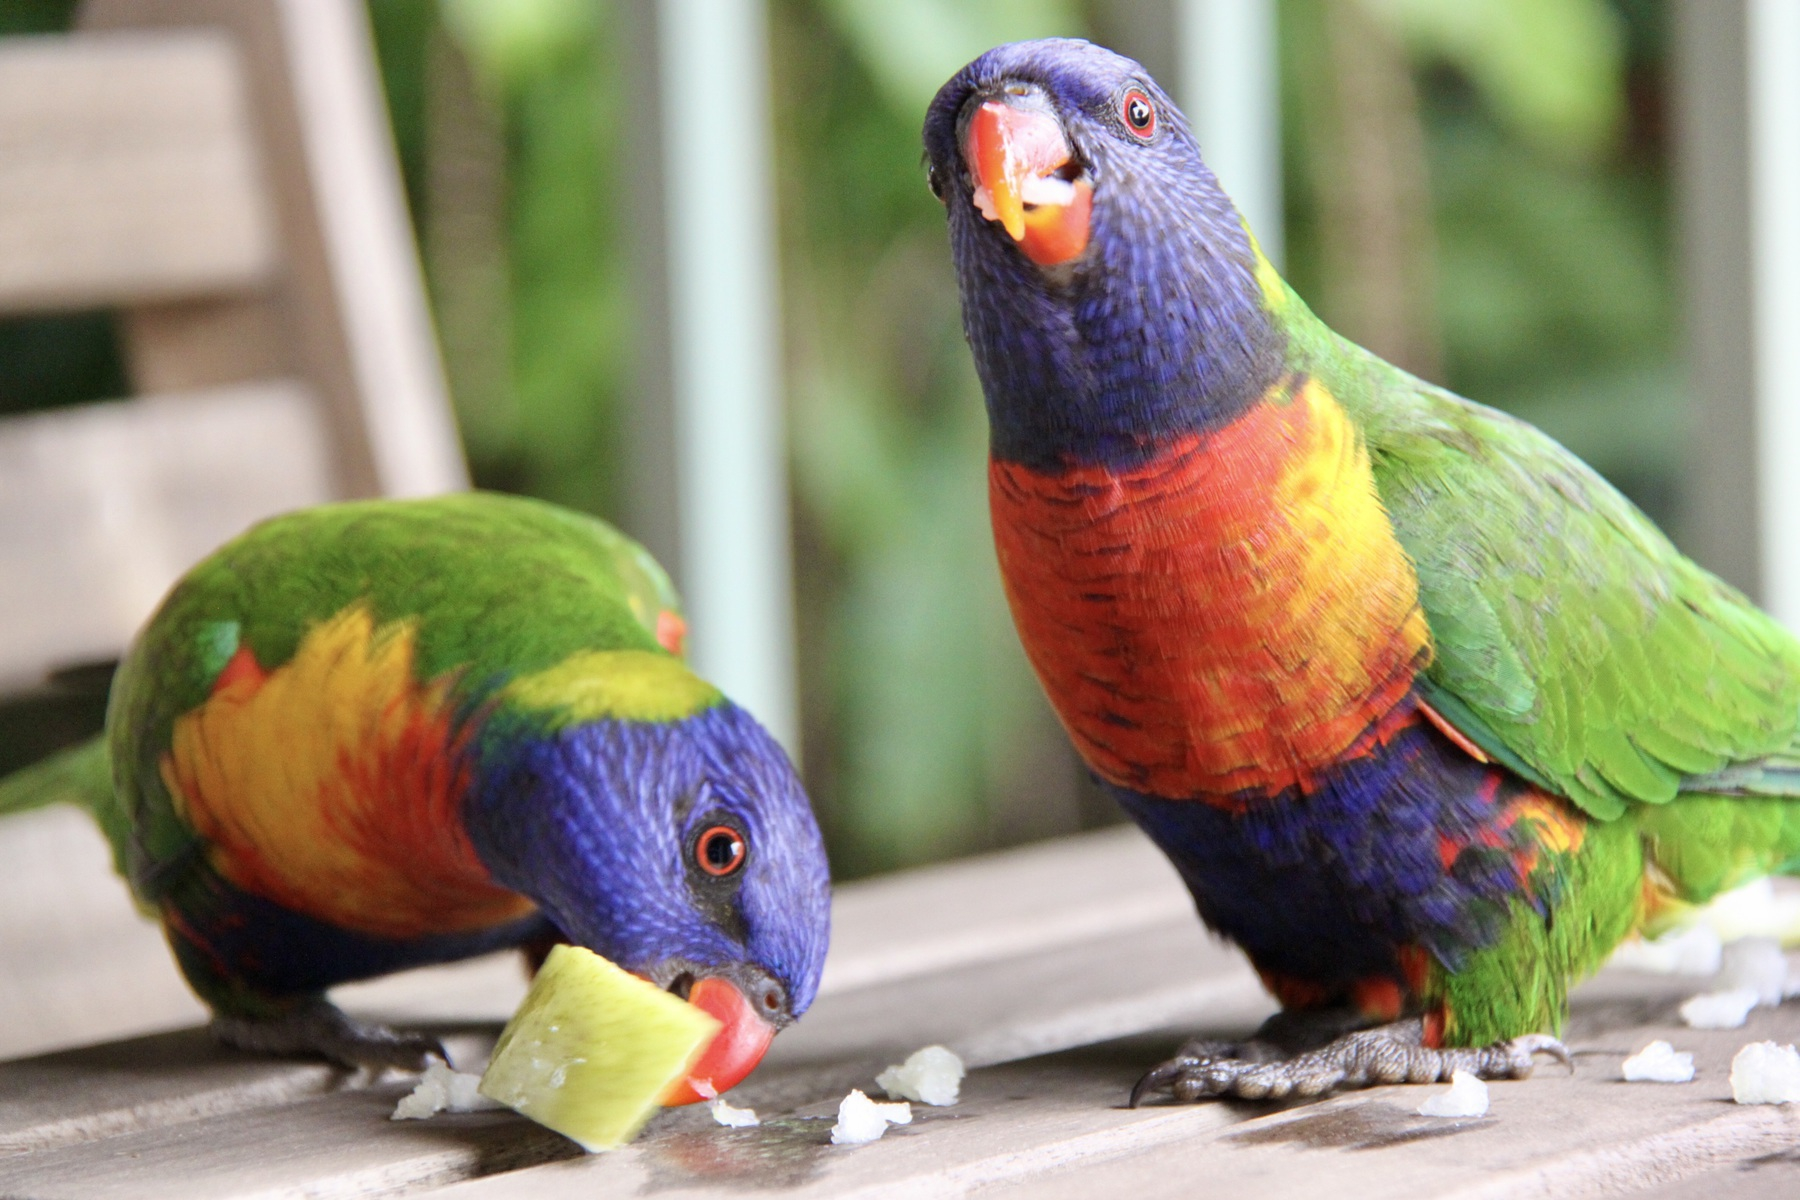 Two rainbow lorikeets eating pear on an outdoor setting with a railing and macadamia tree in the background